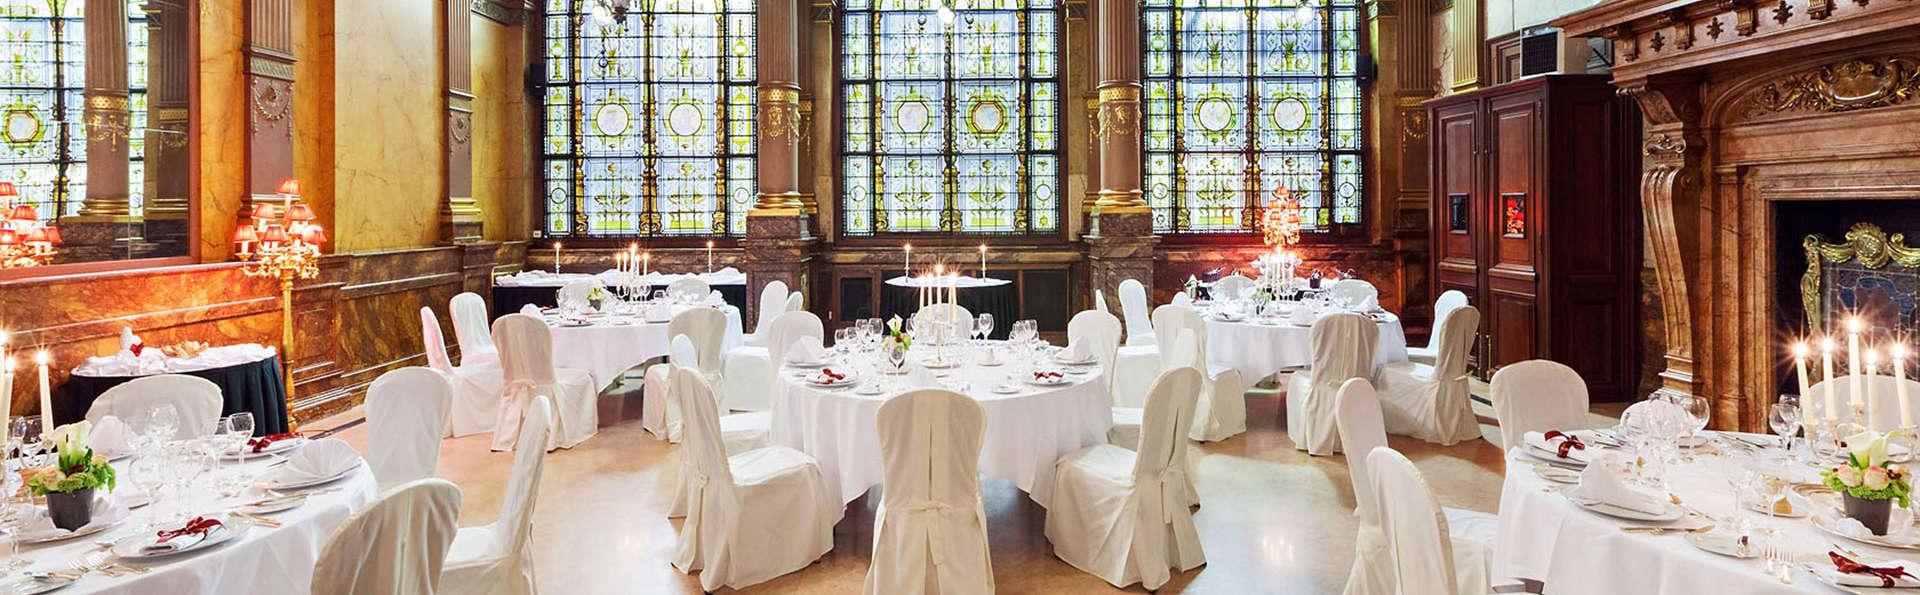 Hotel Metropole - edit_new_Rubinstein-room_banquet-set-up2.jpg